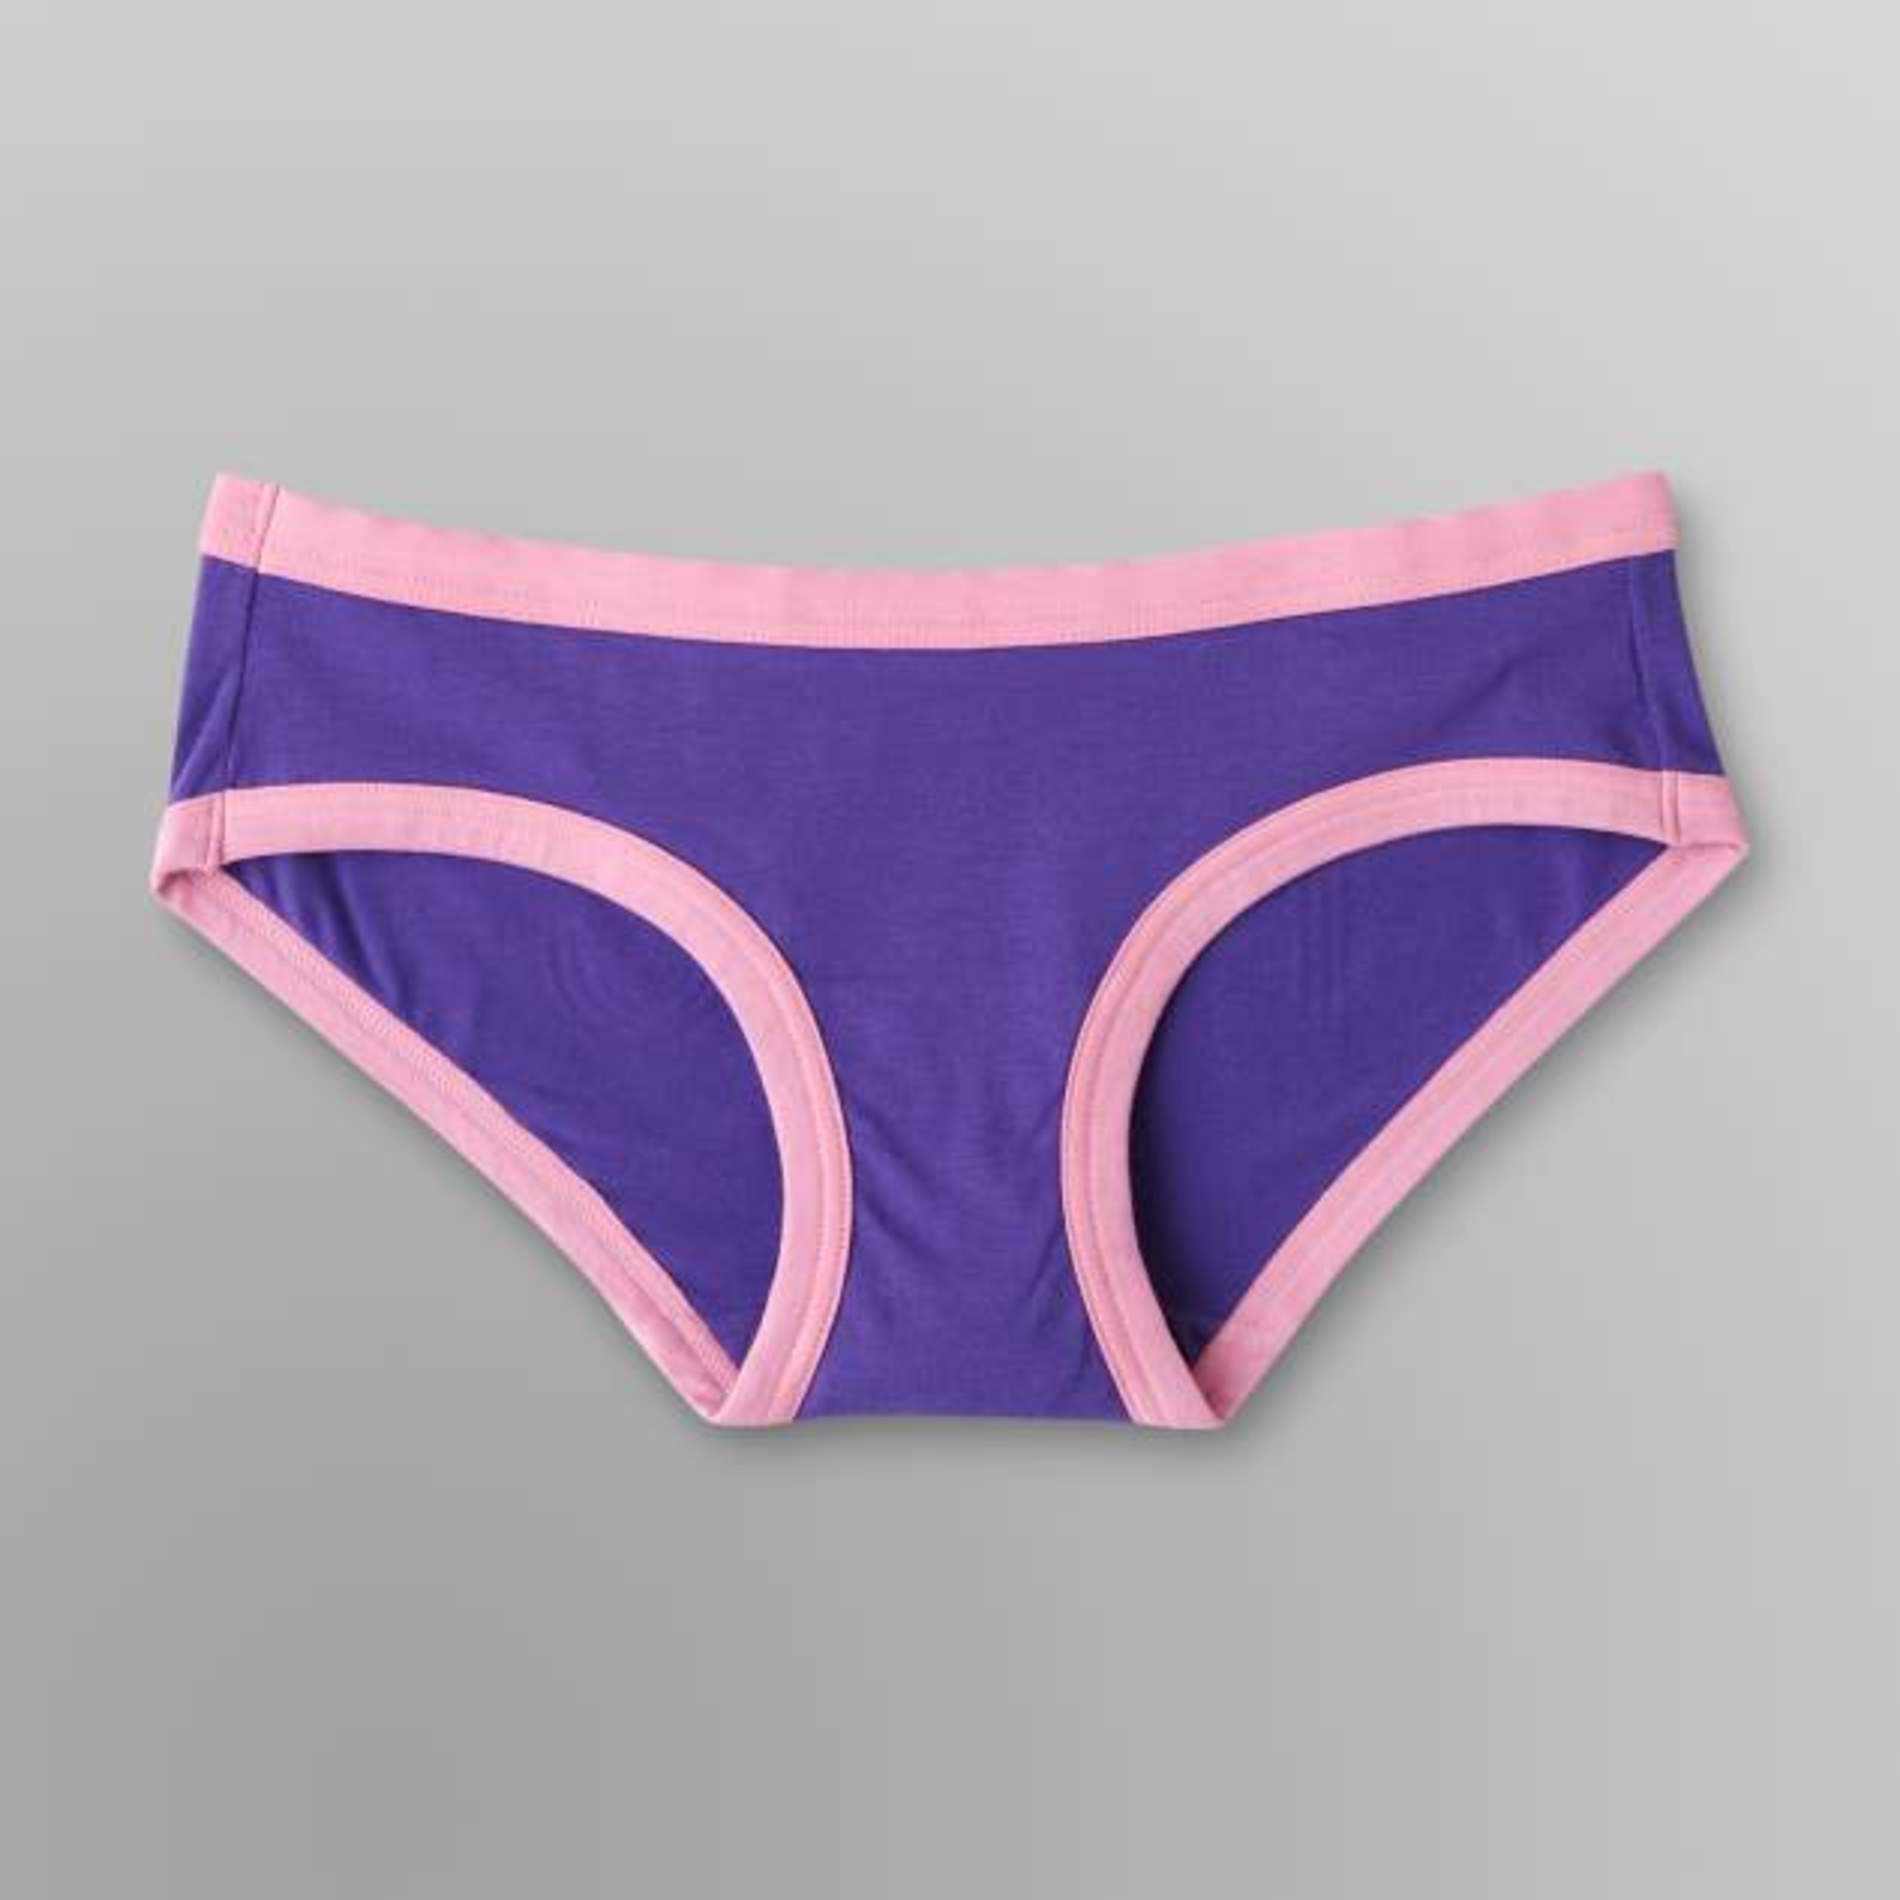 Joe Boxer Women's Hipster Panty - Love at Kmart.com